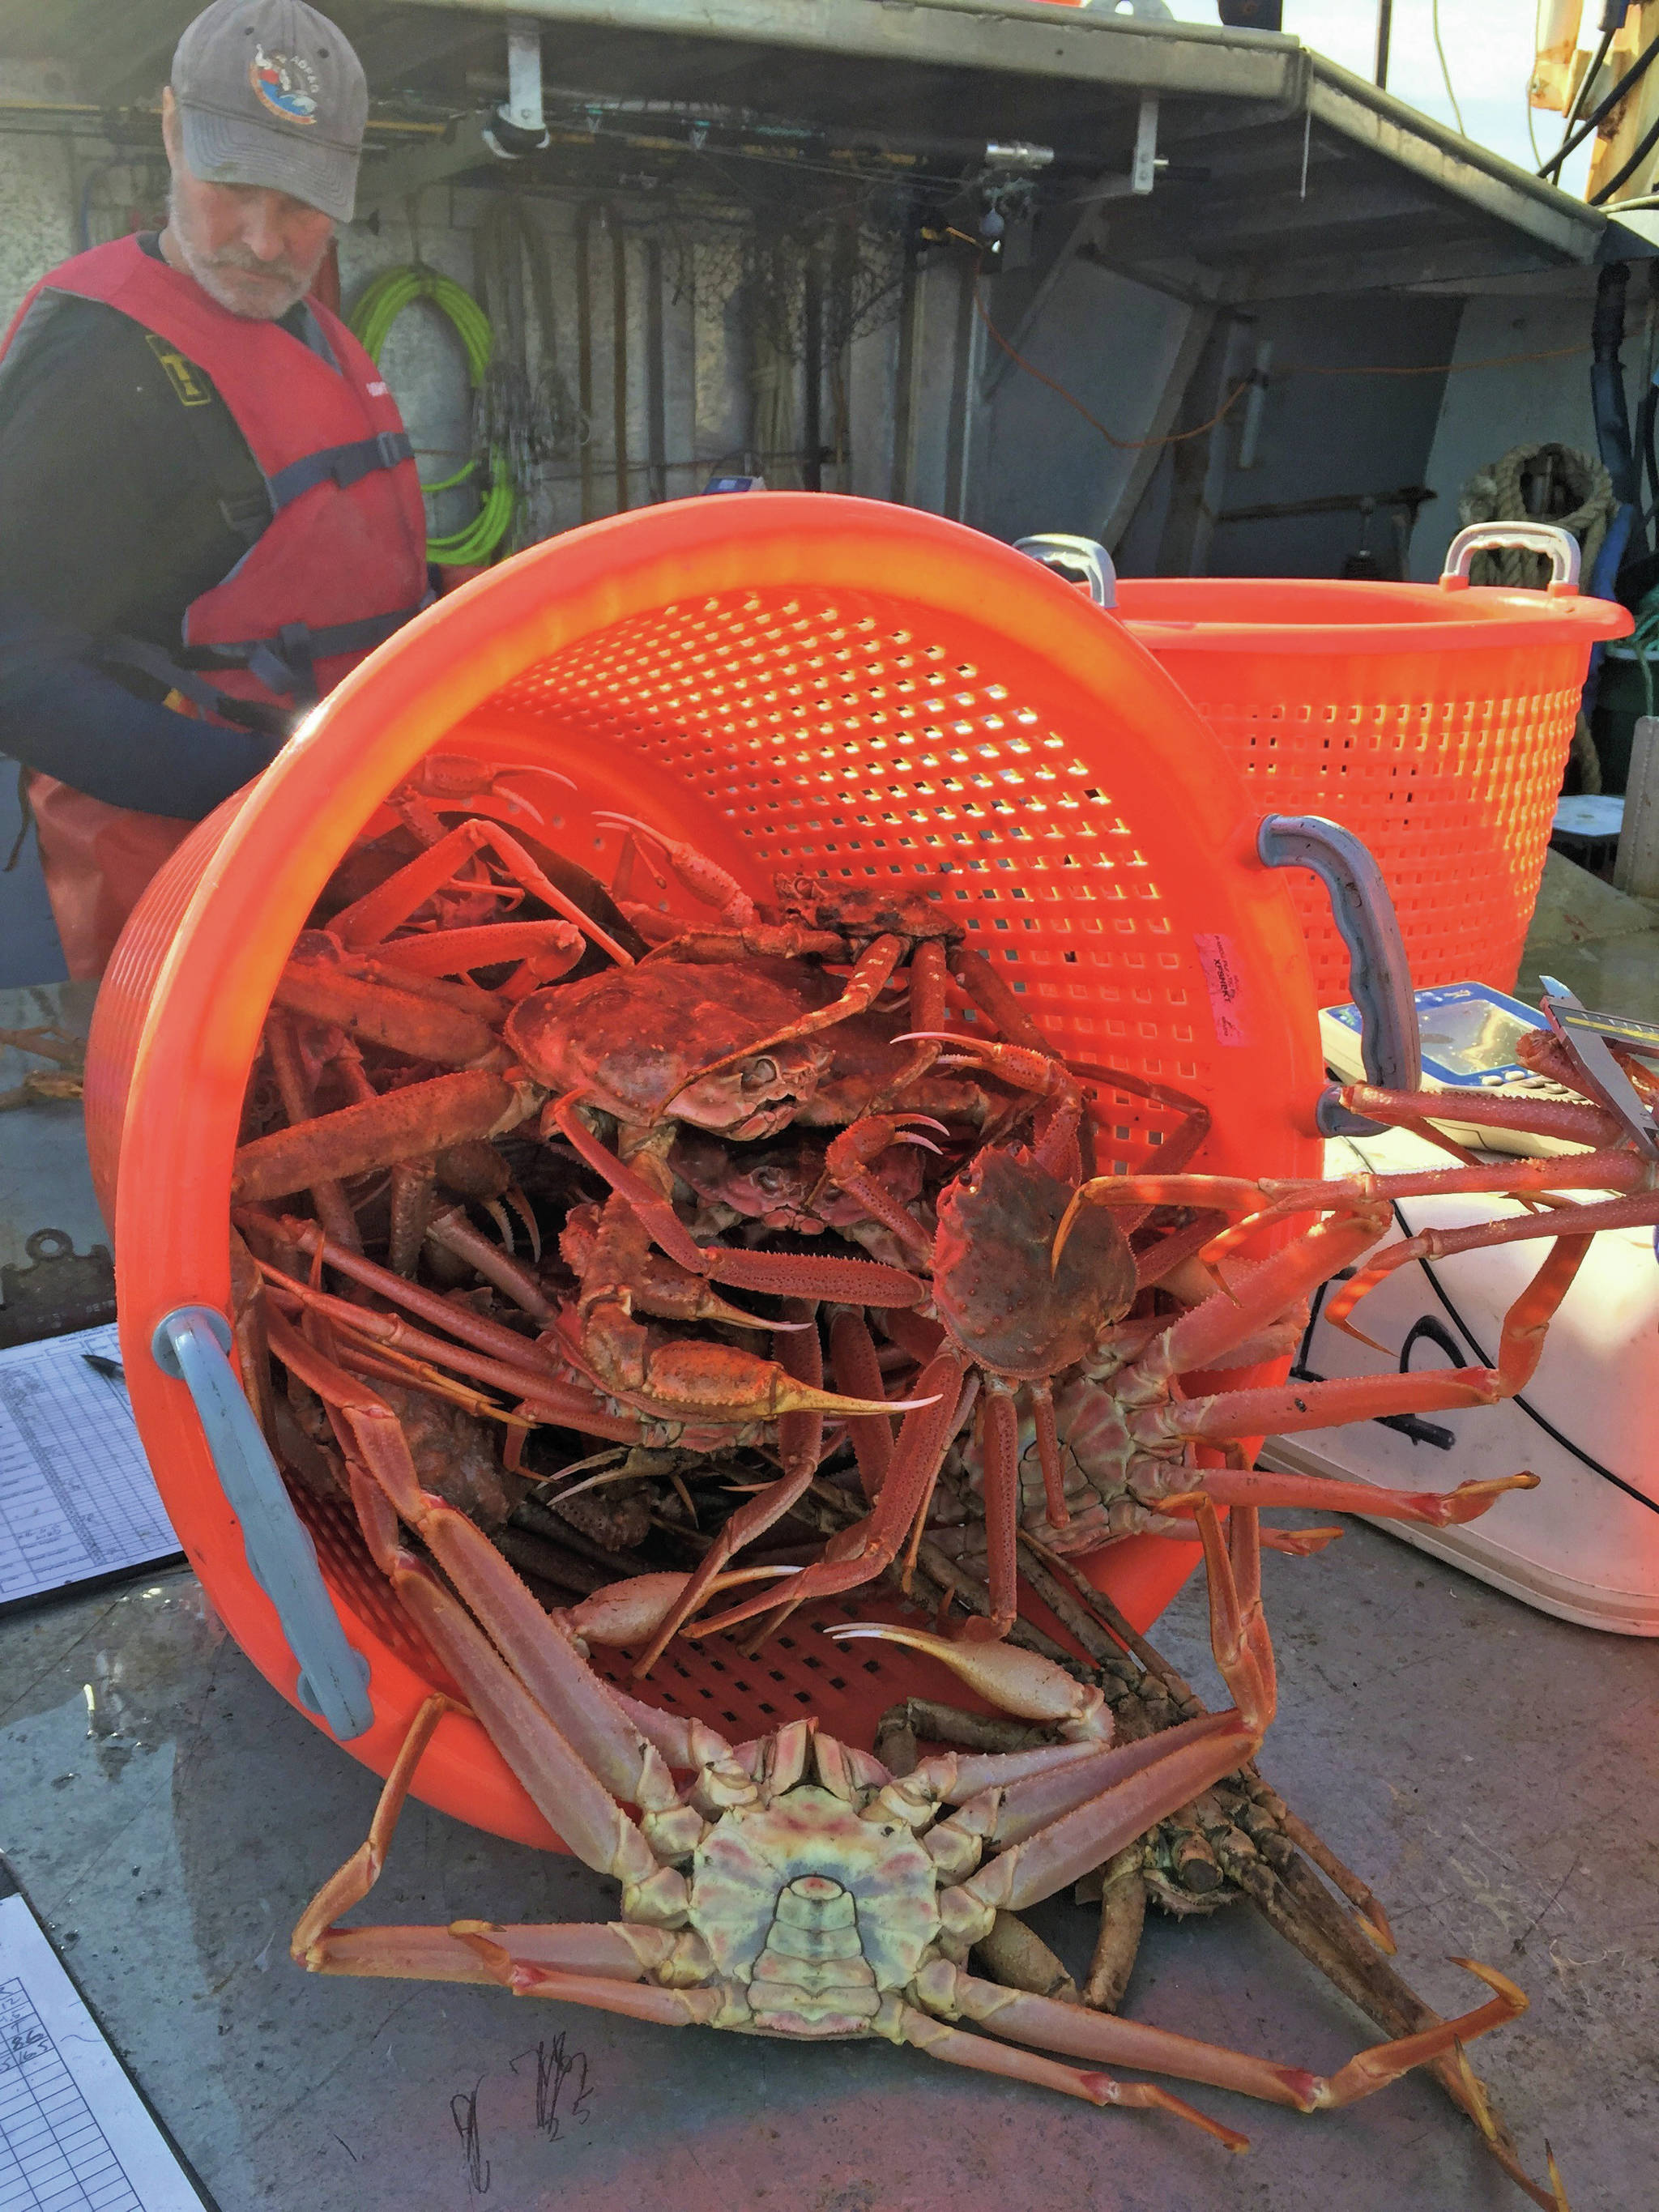 Photo provided                                  A tanner crab trawl survey done by the Alaska Department of Fish and Game in September 2018 assessed crab populations in Kachemak Bay.